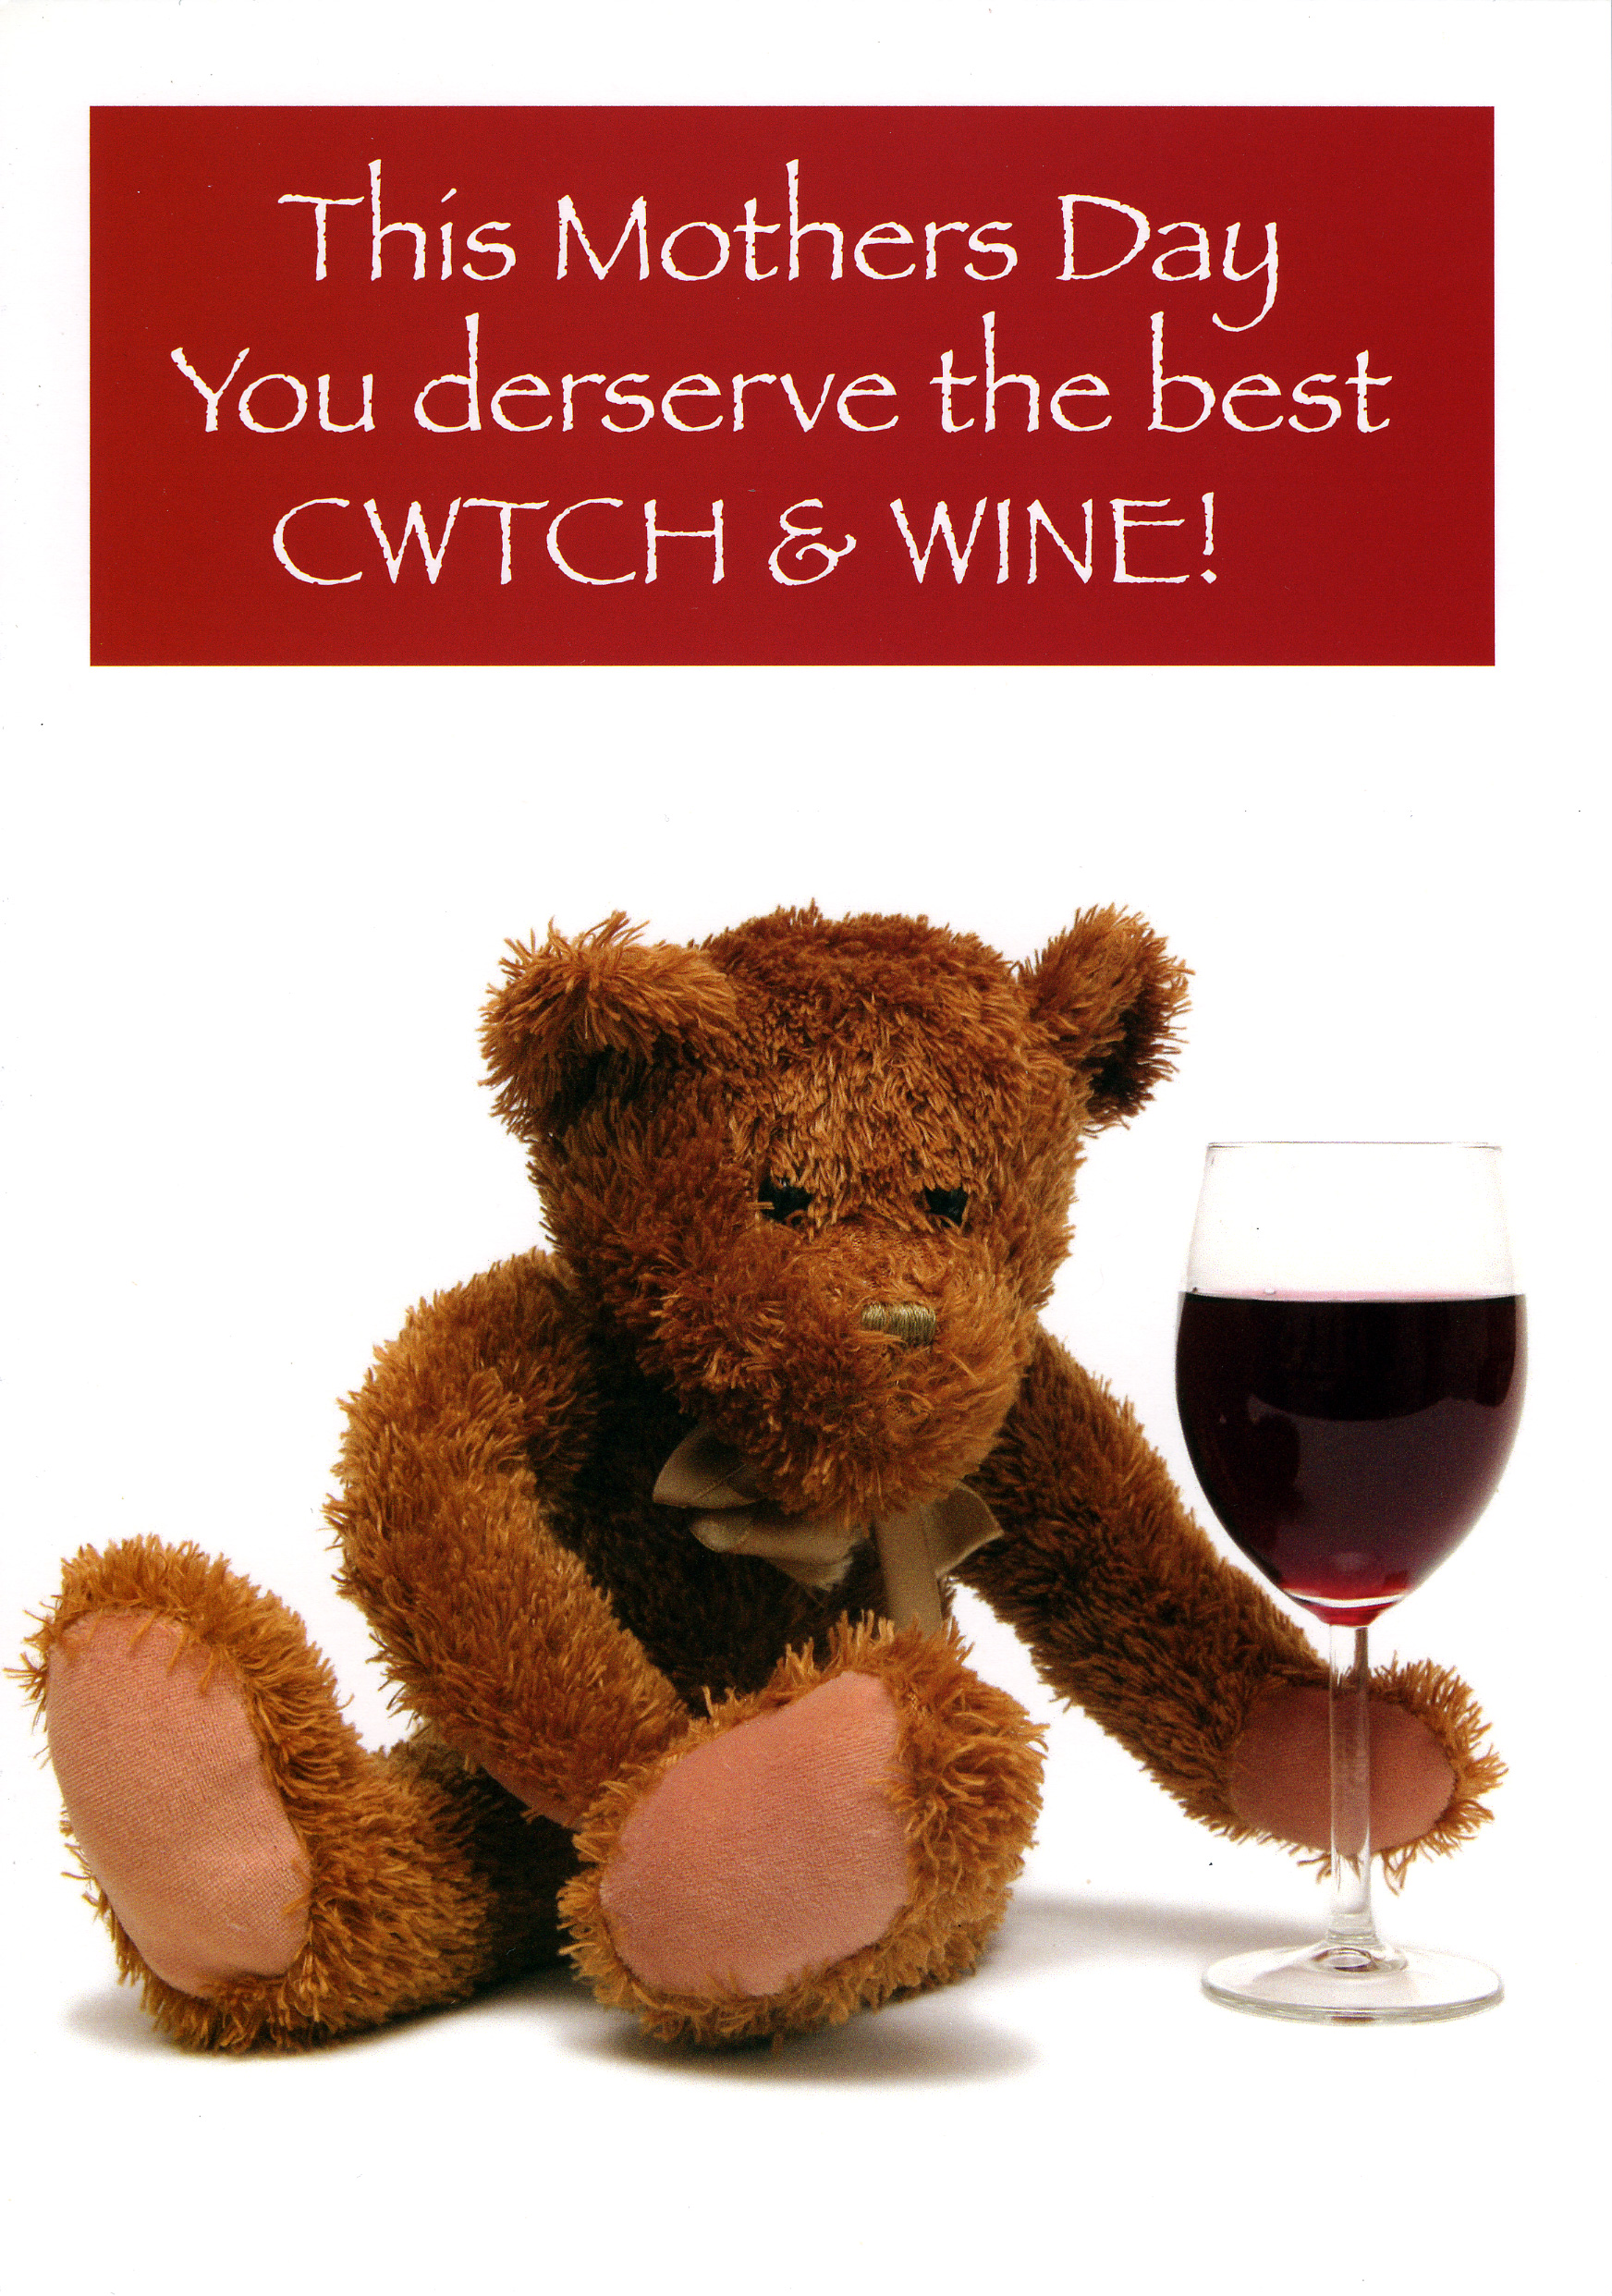 Mother's Day - Cwtch & Wine - Welsh Greeting Card